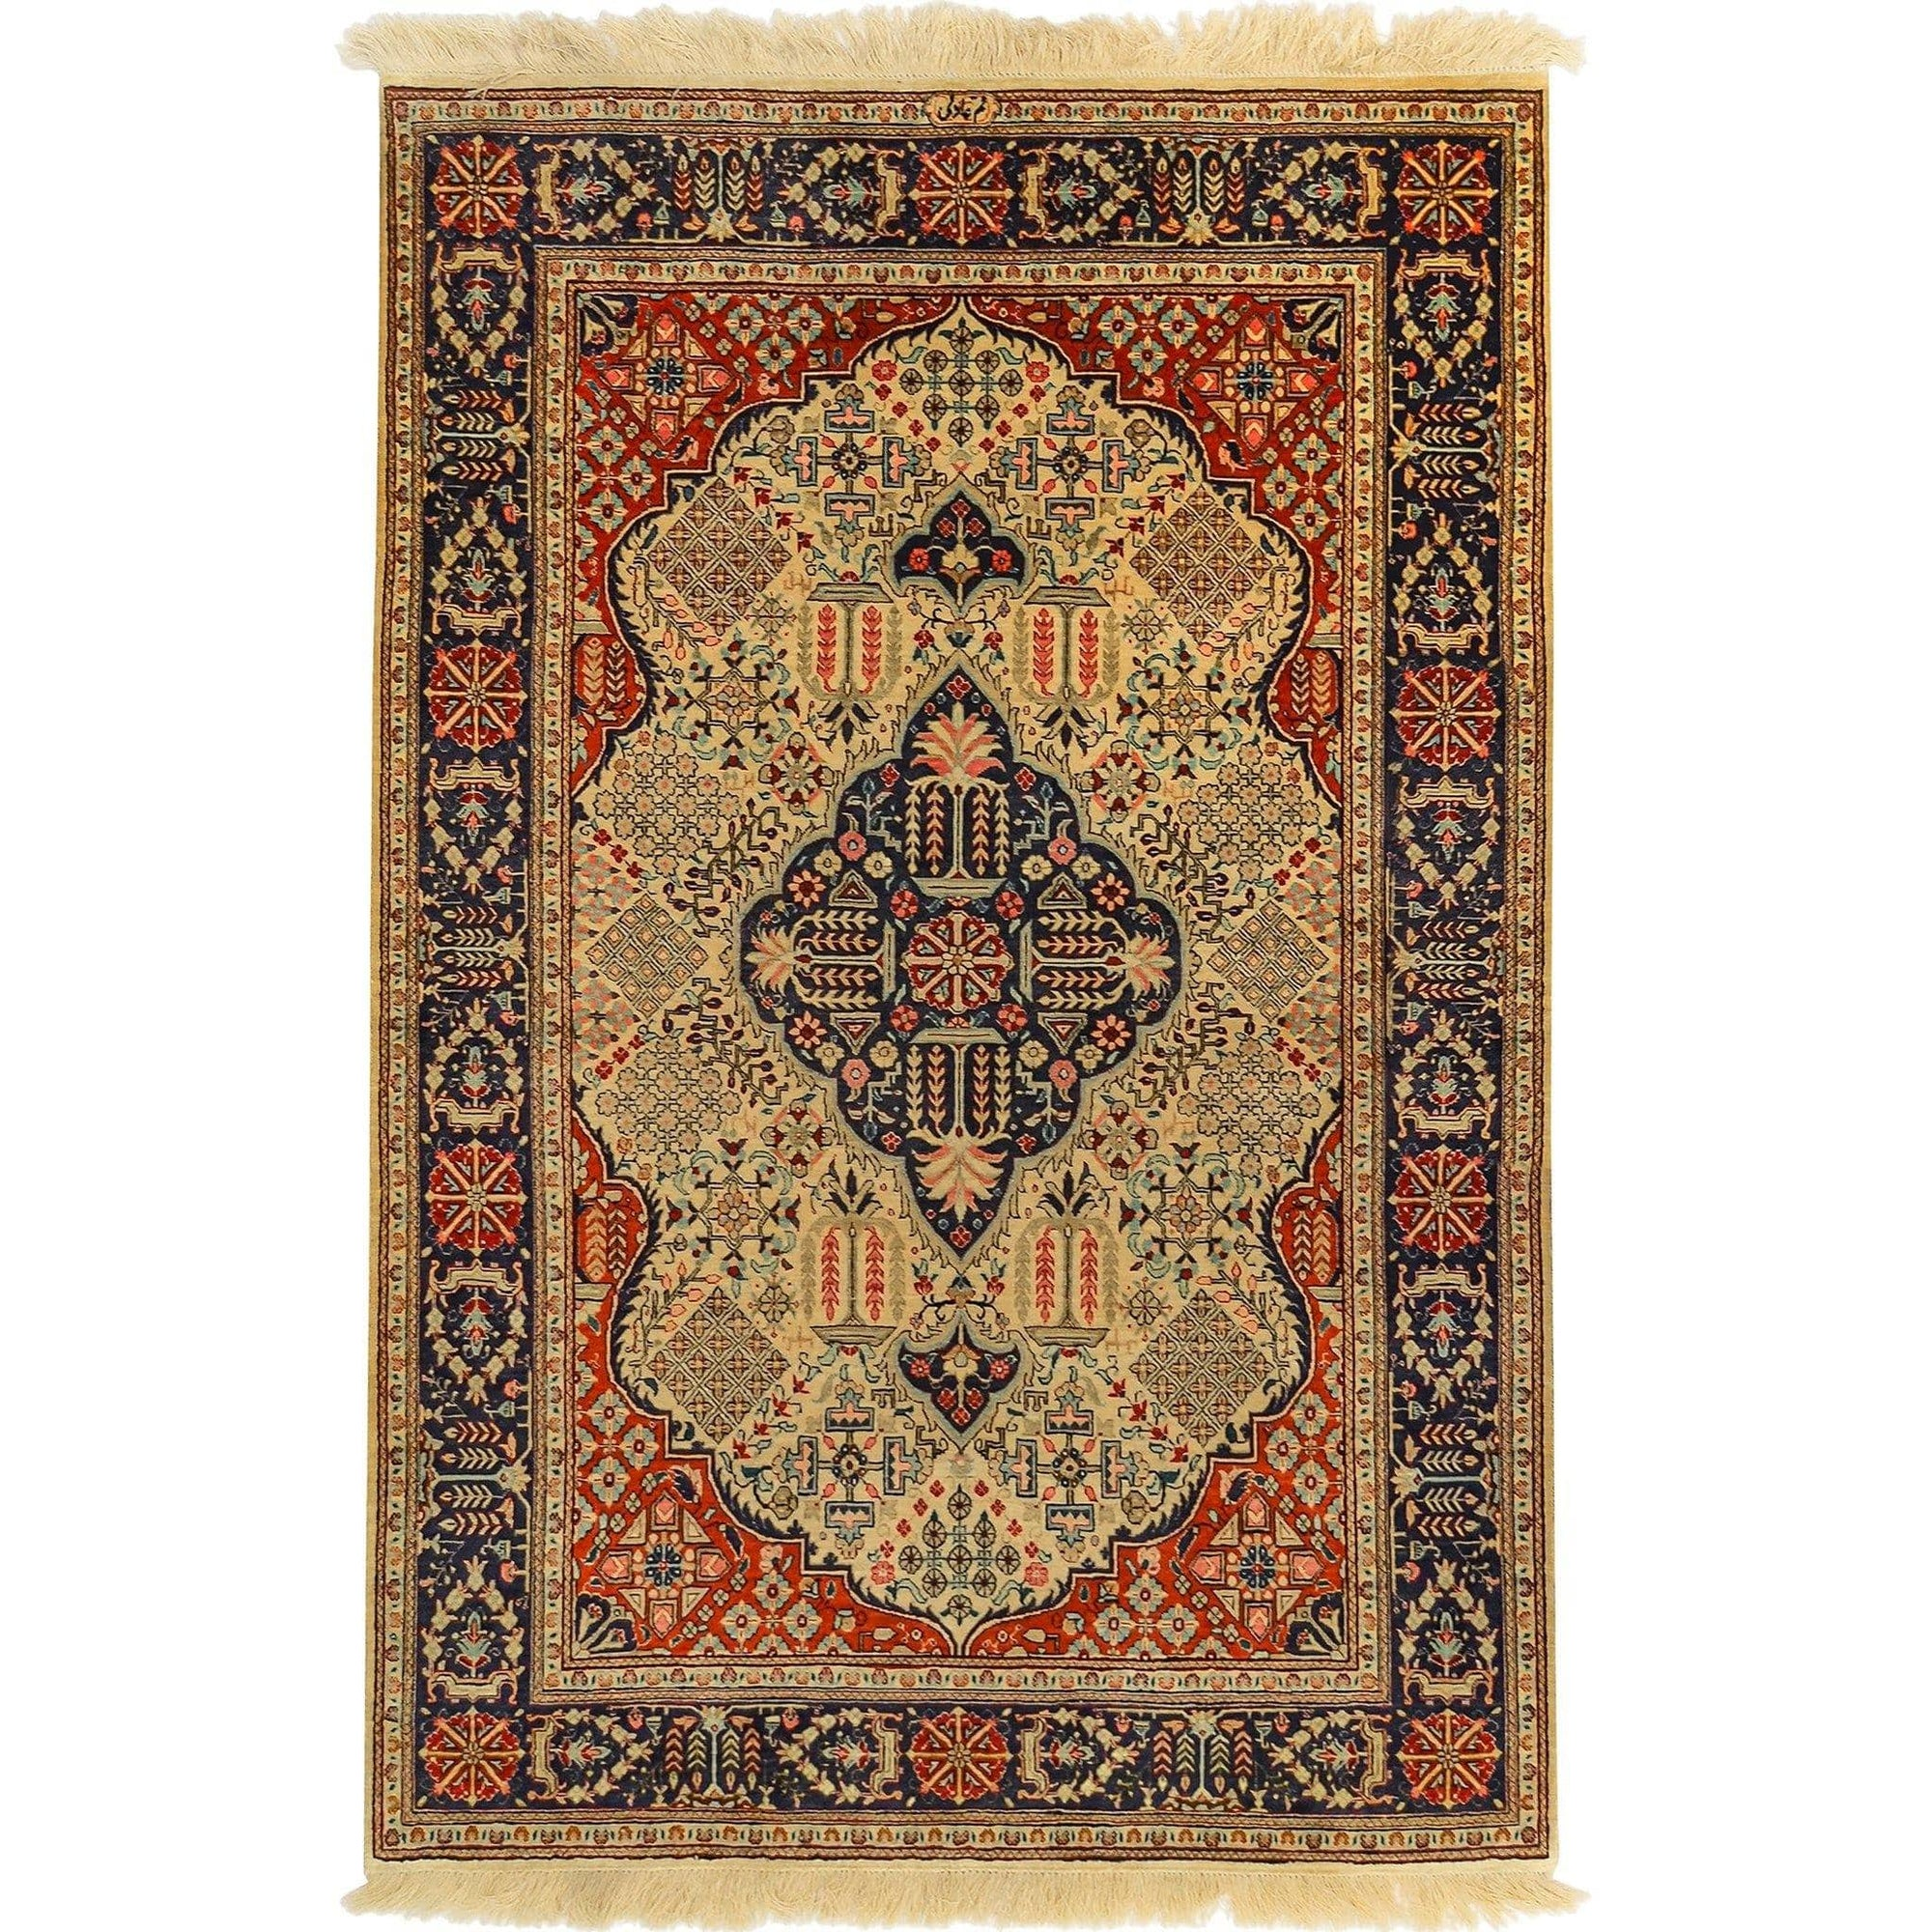 Super Fine Hand-knotted Pure Qom Silk Persian Rug 100cm x 154cm (SIGNED BY MASTER WEAVER) Persian-Rug | House-of-Haghi | NewMarket | Auckland | NZ | Handmade Persian Rugs | Hand Knotted Persian Rugs